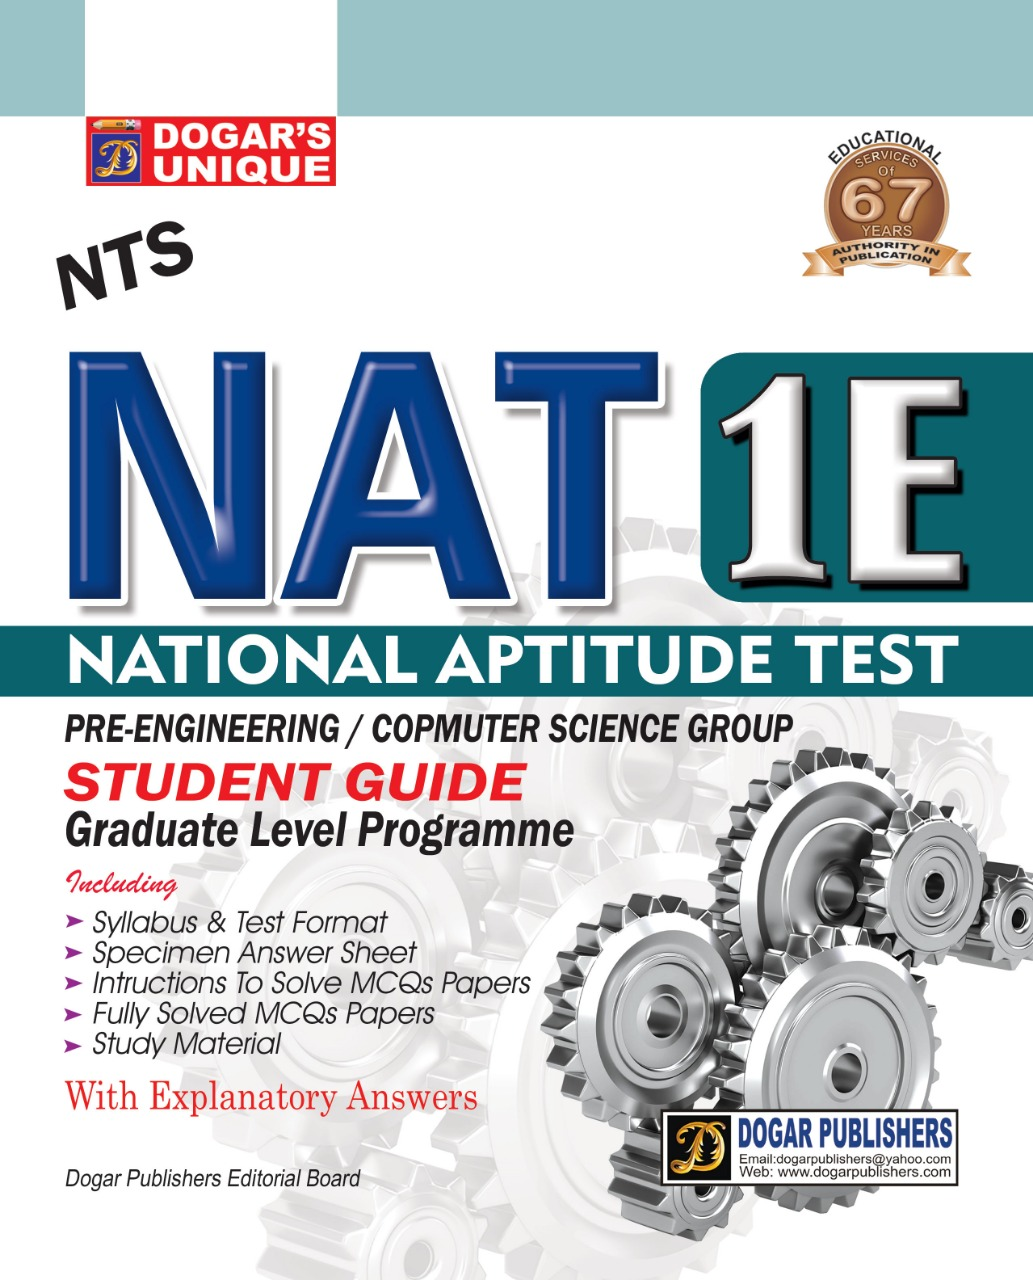 NTS (National Testing service) NAT 1E (National Aptitude Test) Pre Engineering / Computer Science Graduate Level Programe